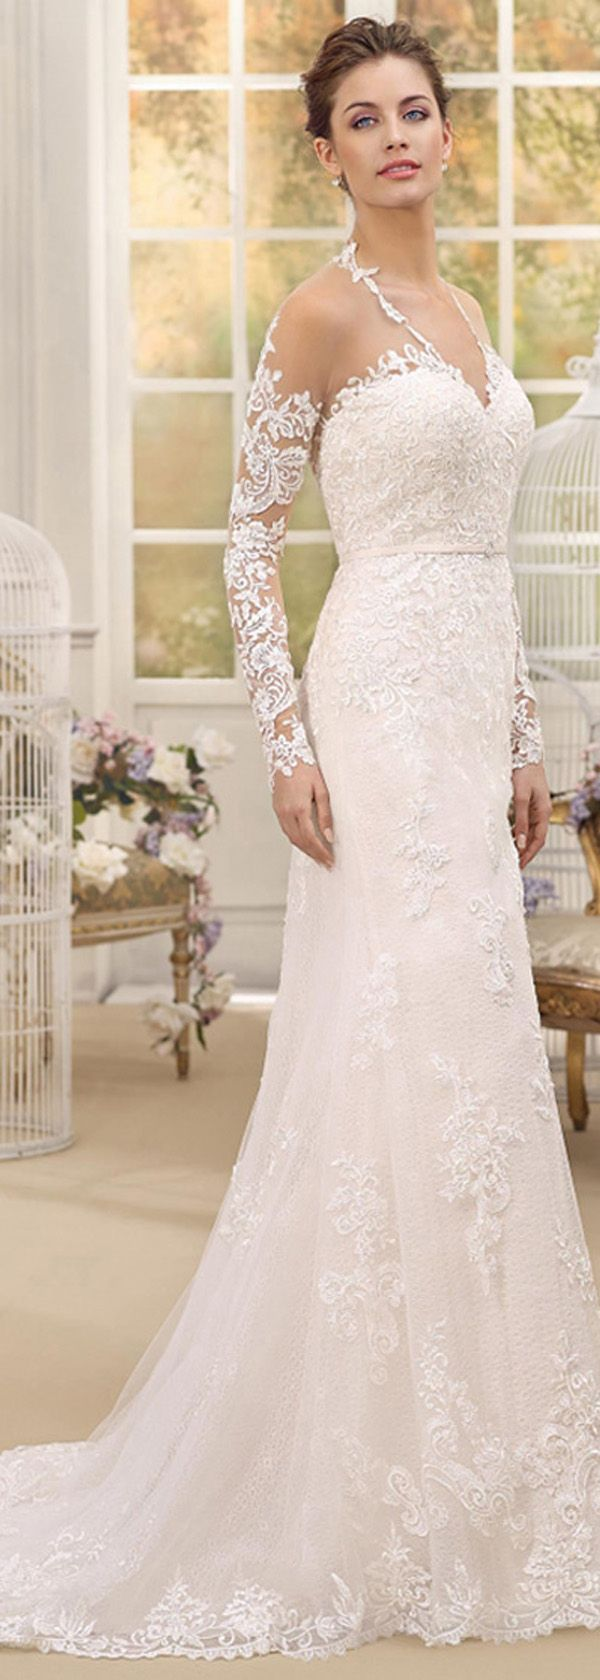 Charming Tulle & Satin V-Neck Sheath Wedding Dresses With Lace Appliques